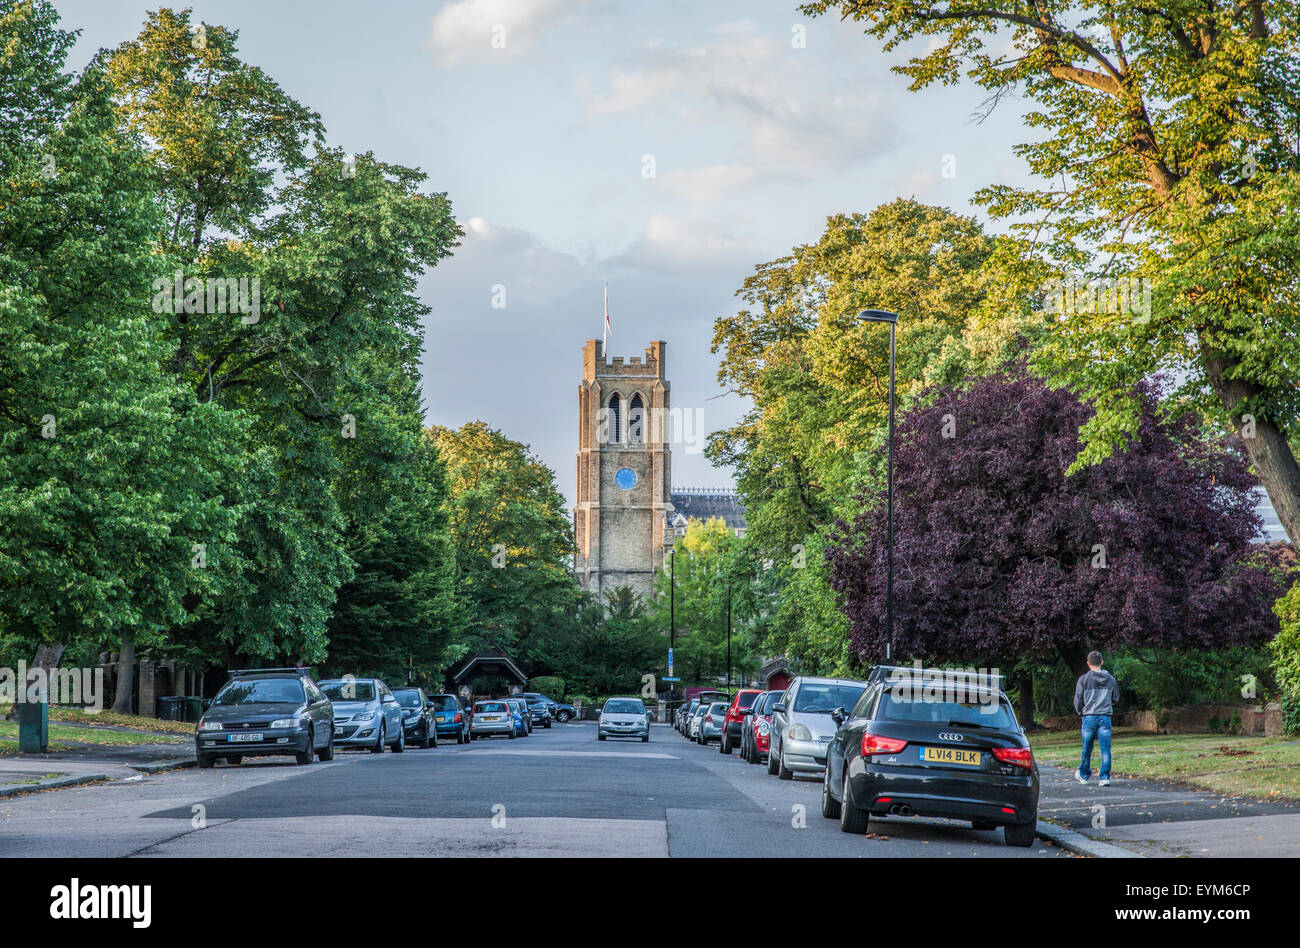 Sydenham Avenue in Sydenham South London with a view of St Bartholomew's Parish Church where the explorer Ernest - Stock Image